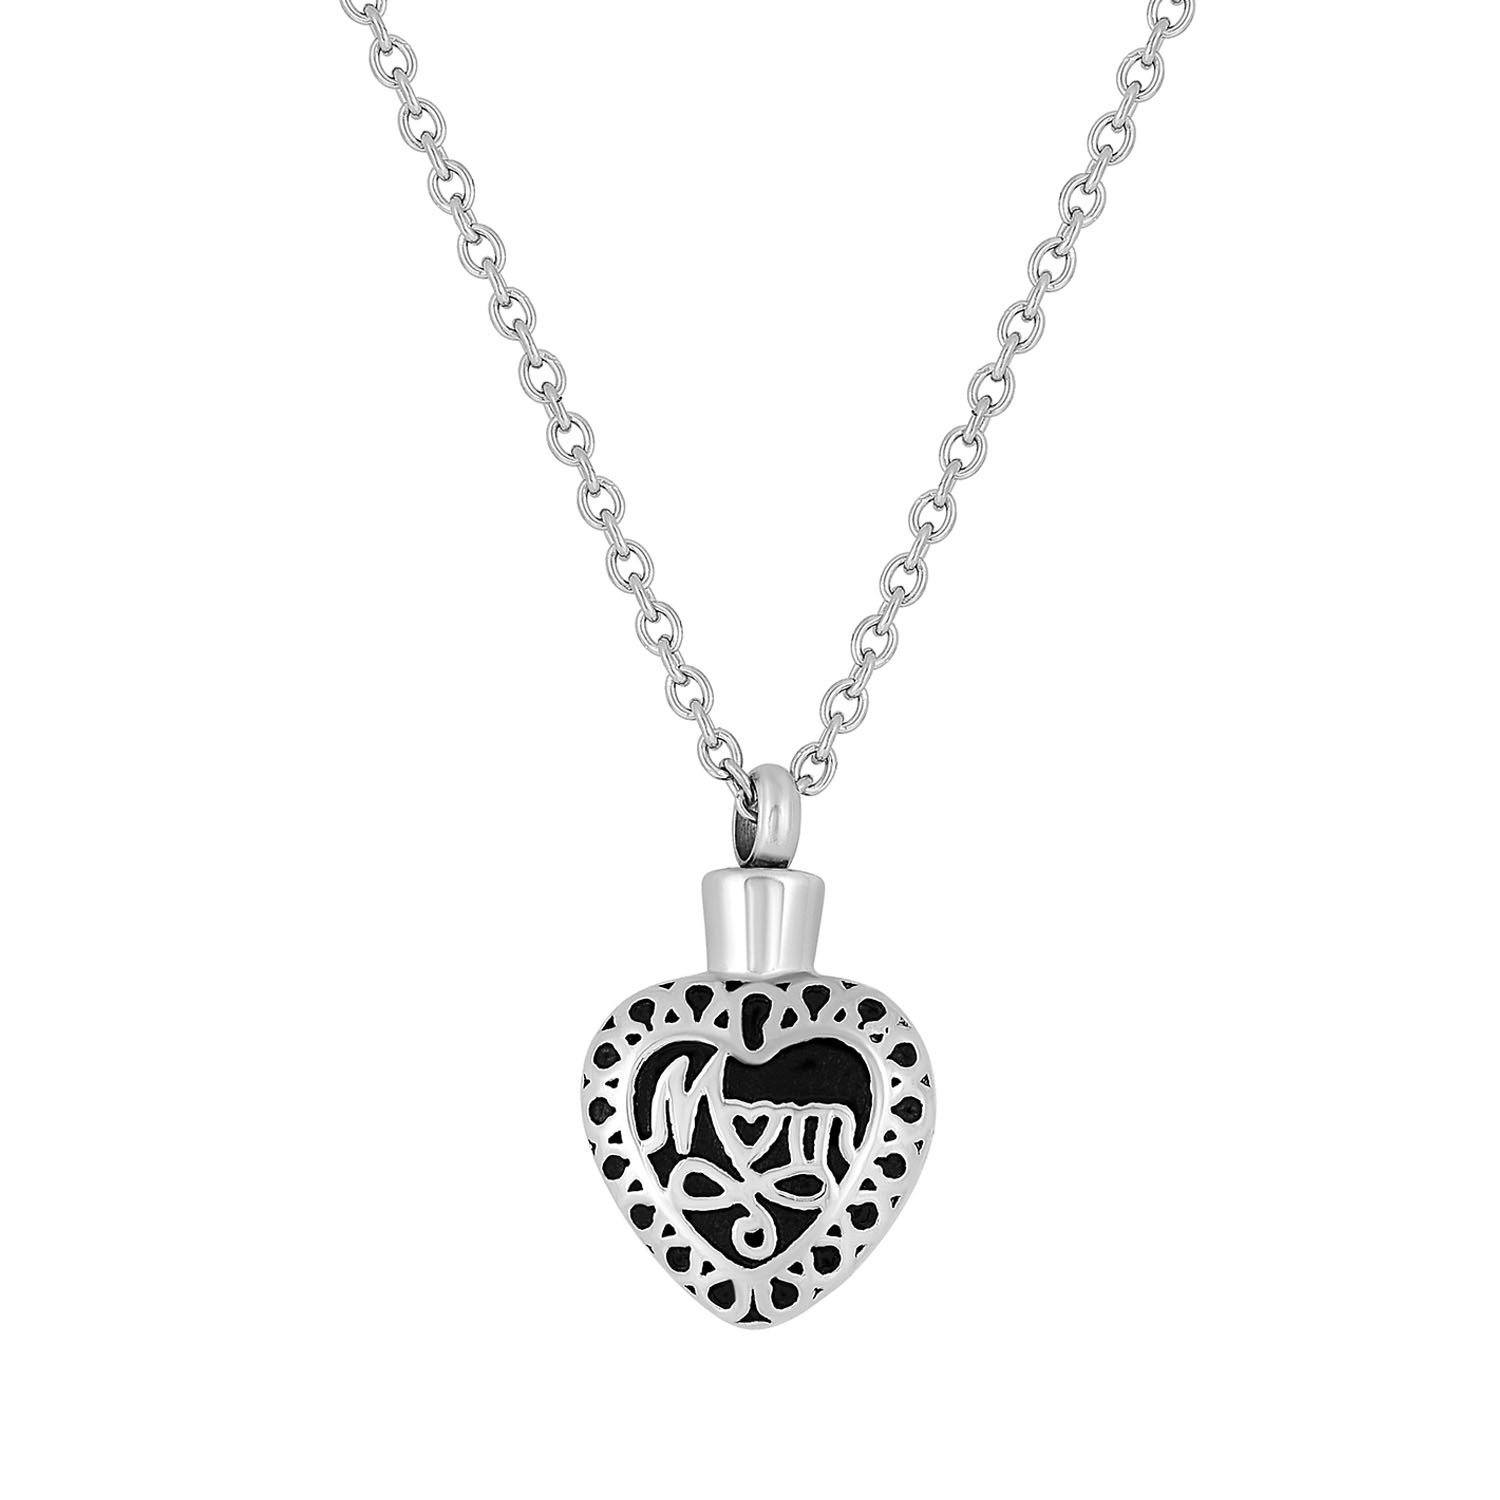 pendant jewelry keepsake urn always my in ashes grandma heart itm cremation necklace